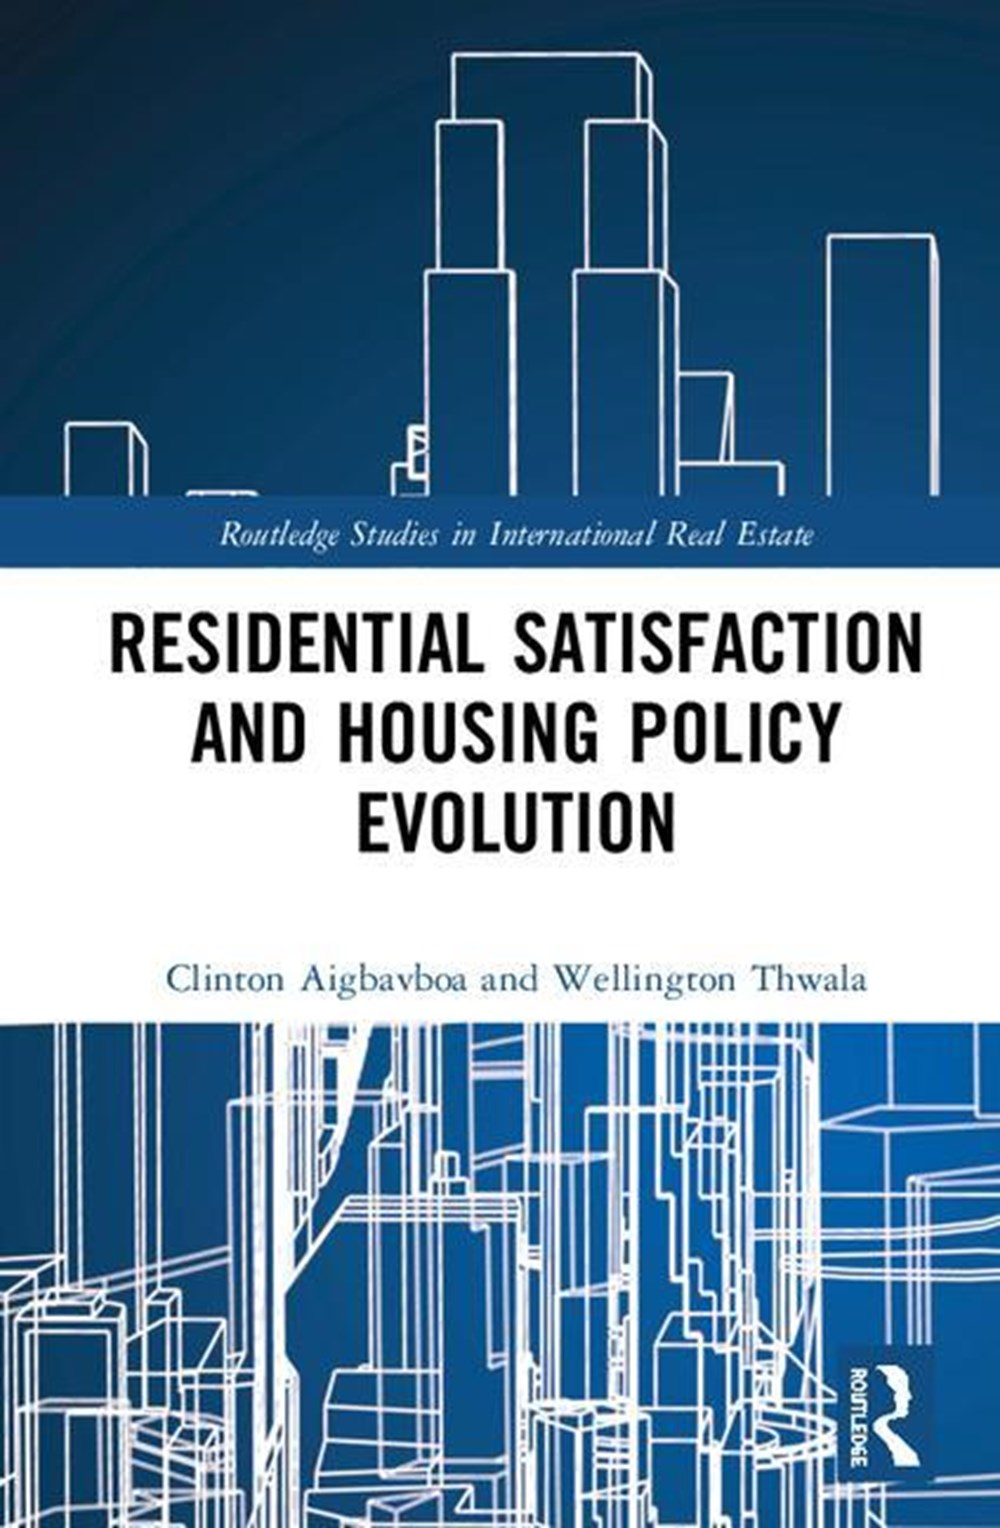 Residential Satisfaction and Housing Policy Evolution